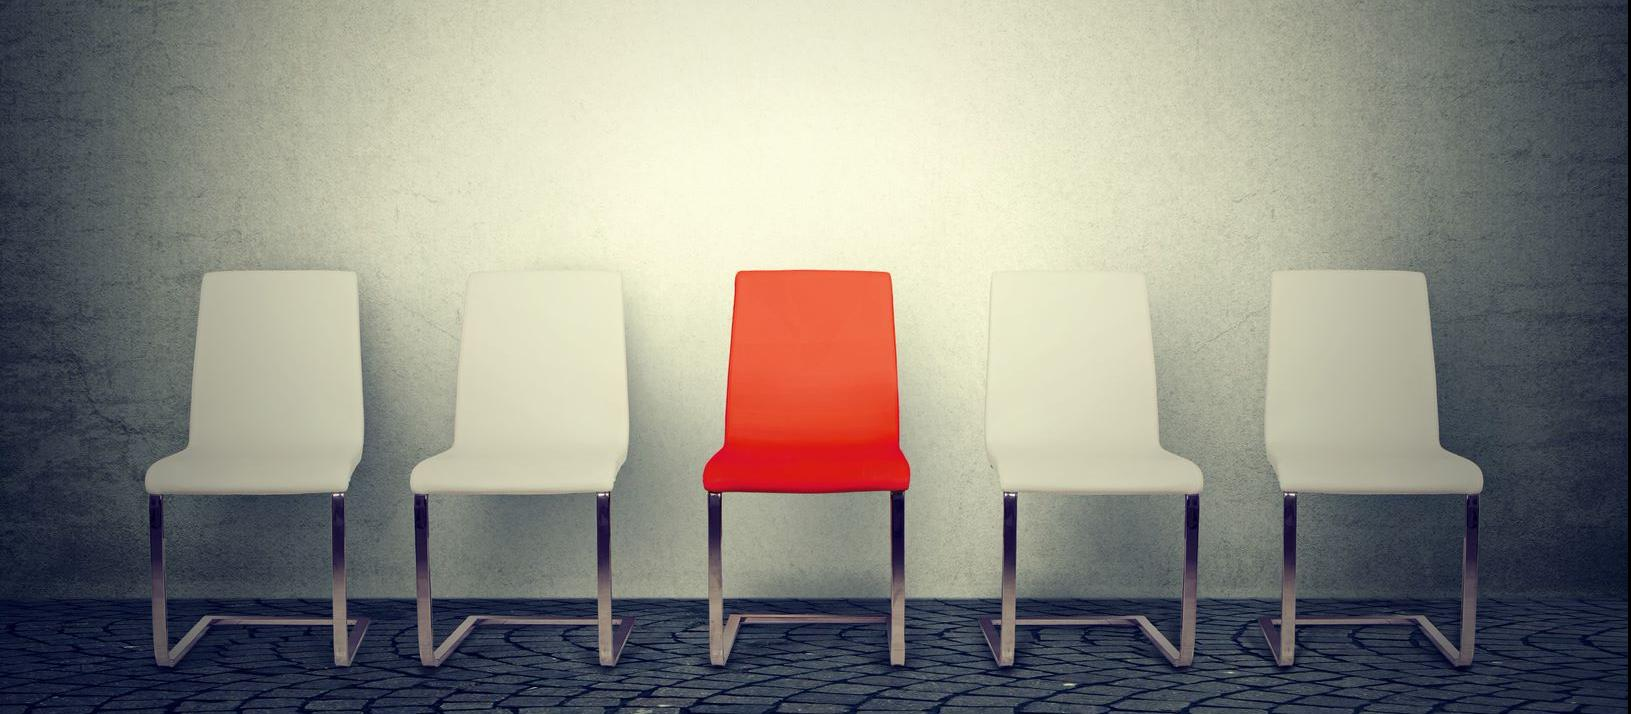 Secrets Fears And Empty Chairs New Zealand Doctor